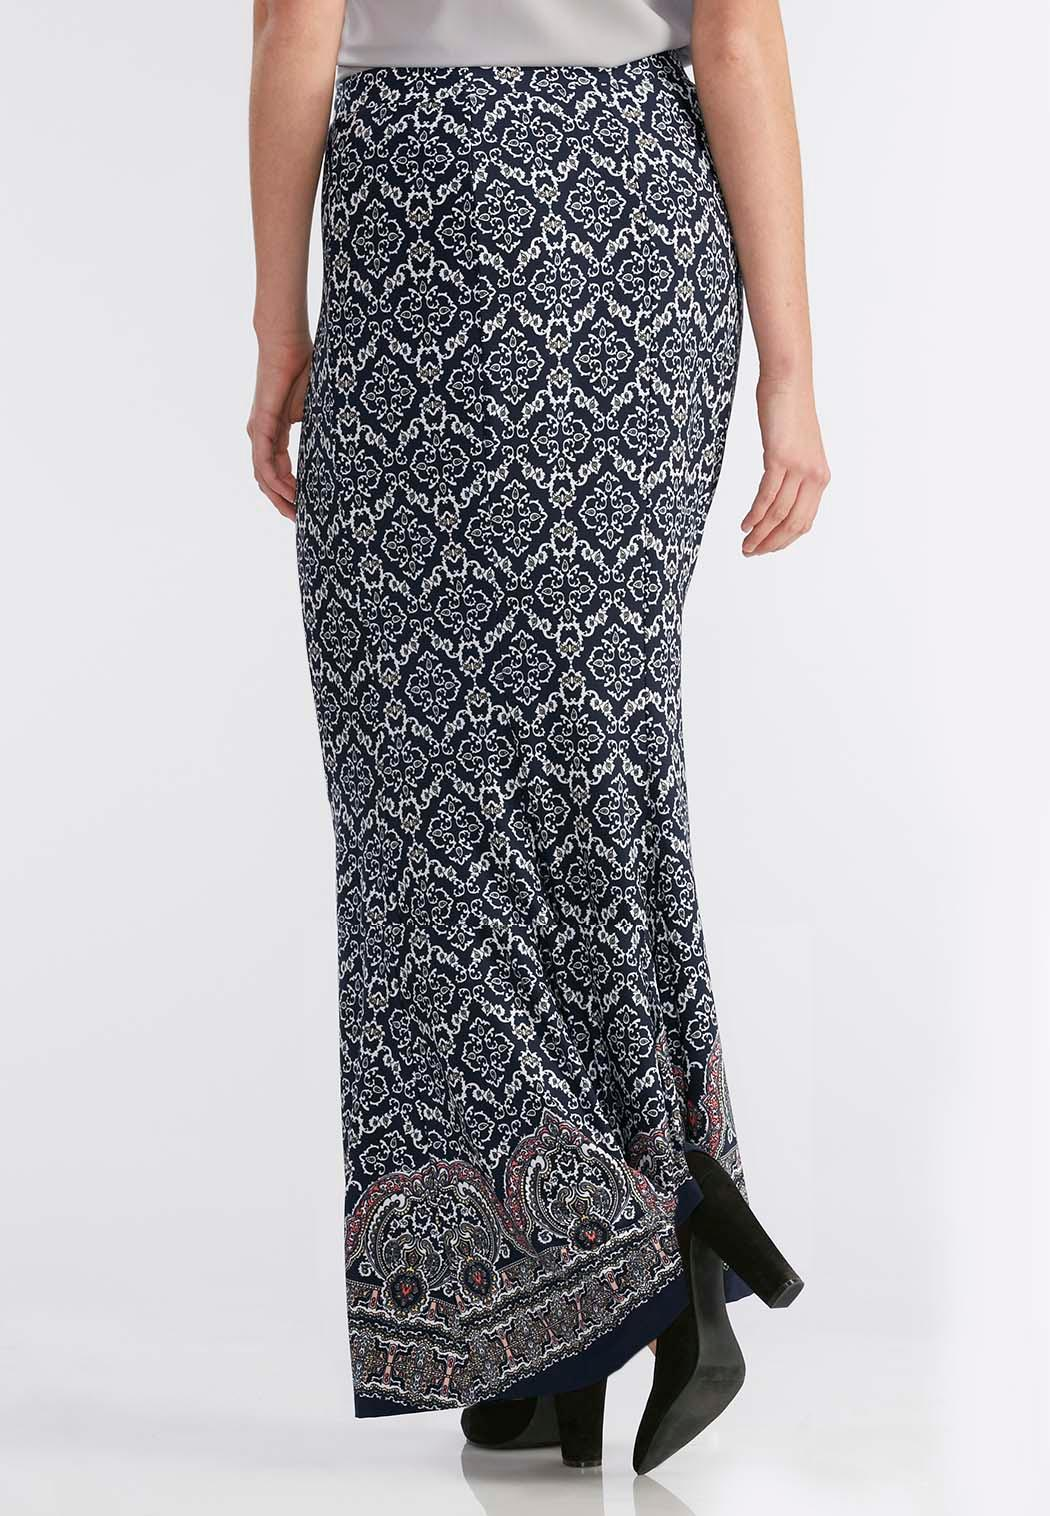 Bordered Rhapsody Mermaid Maxi Skirt-Plus Maxi | Cato Fashions